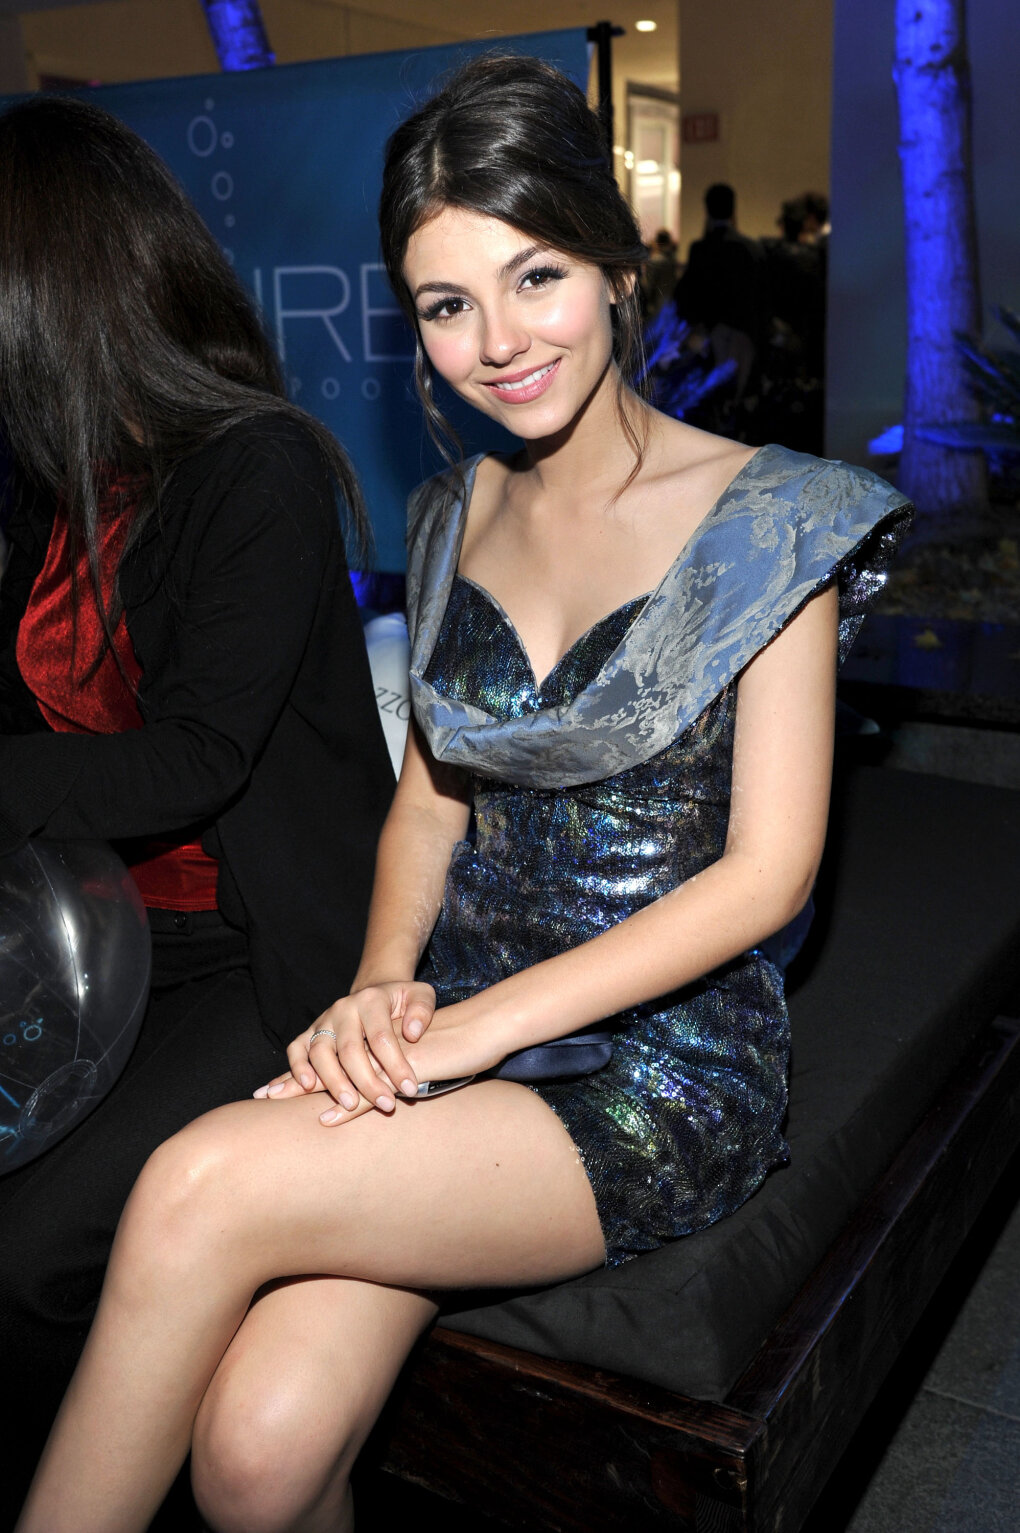 tm9j2aw - charming victoria justice (140+ photos)